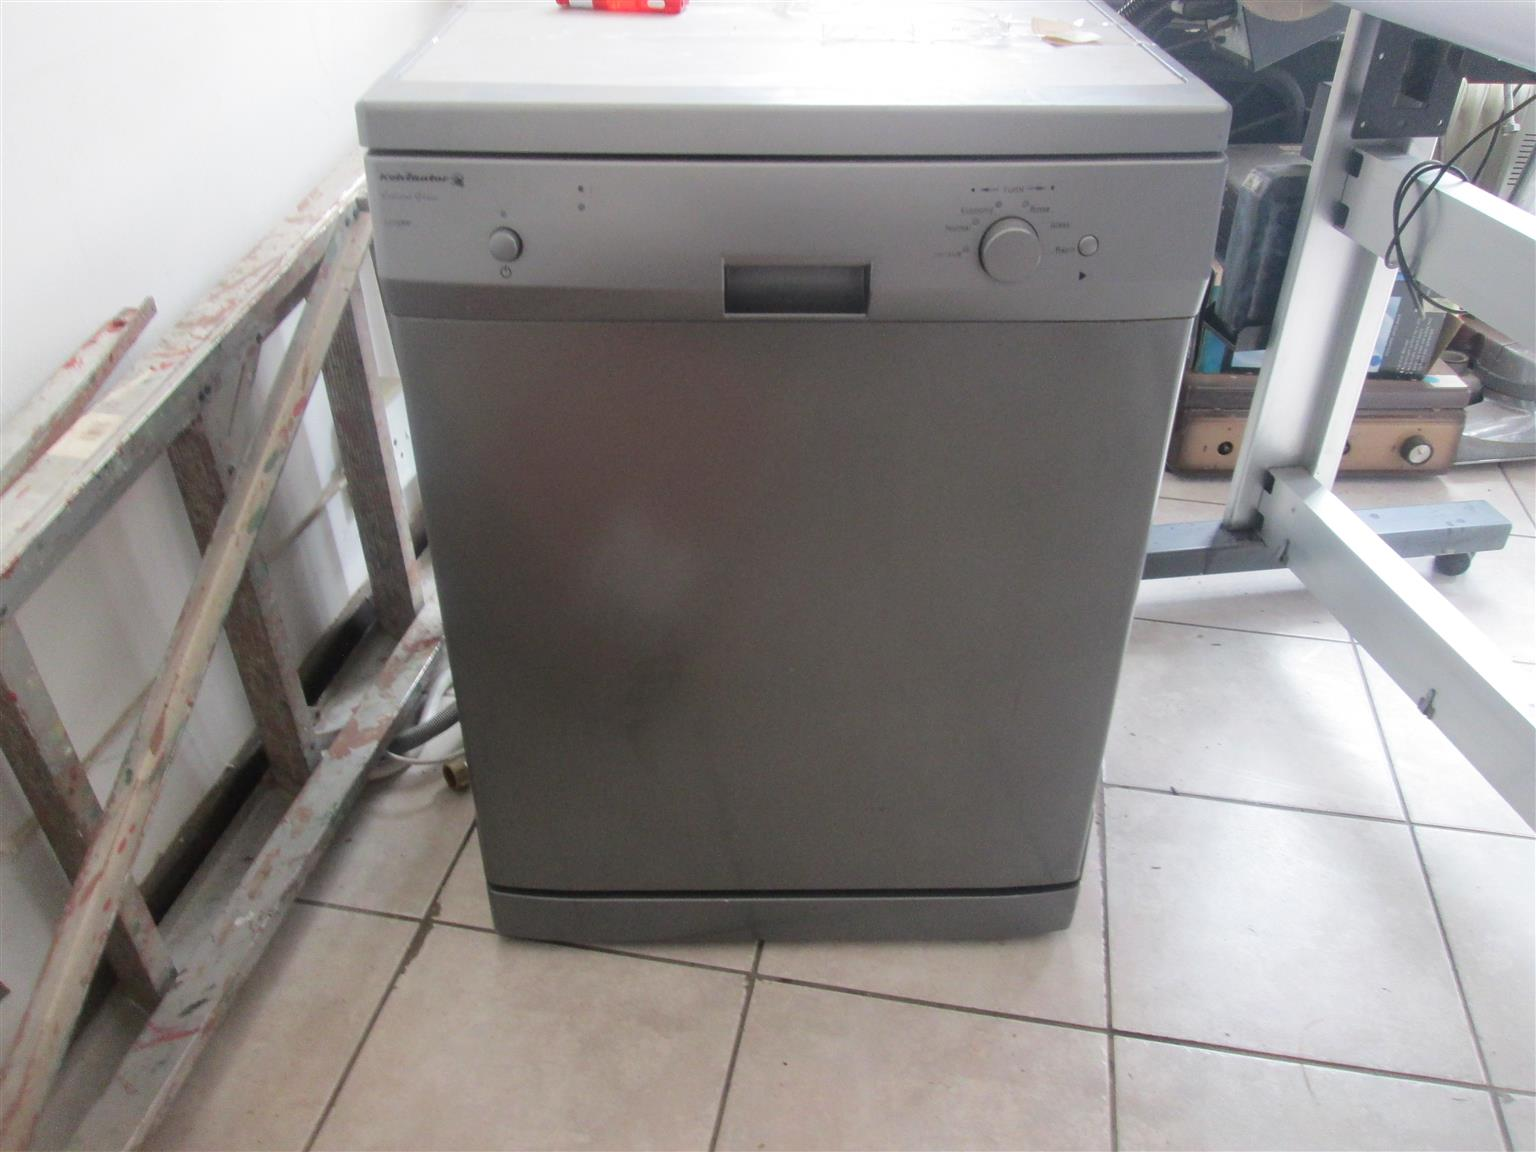 KELVINATOR KD12MM1 DISH WASHER IN MINT CONDITION